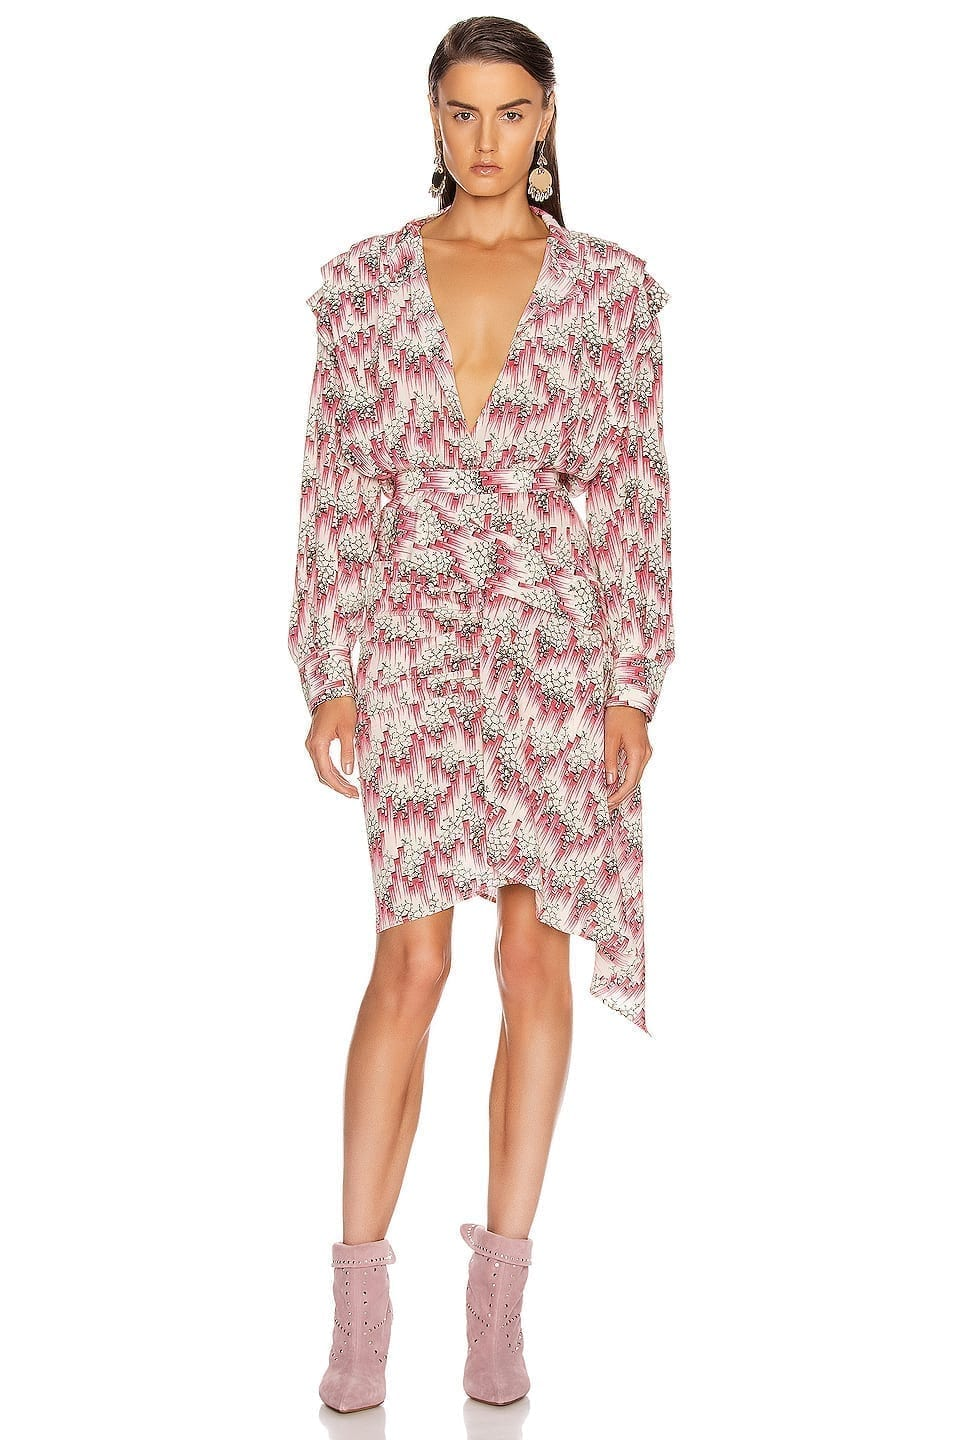 ISABEL MARANT Rieti Dress